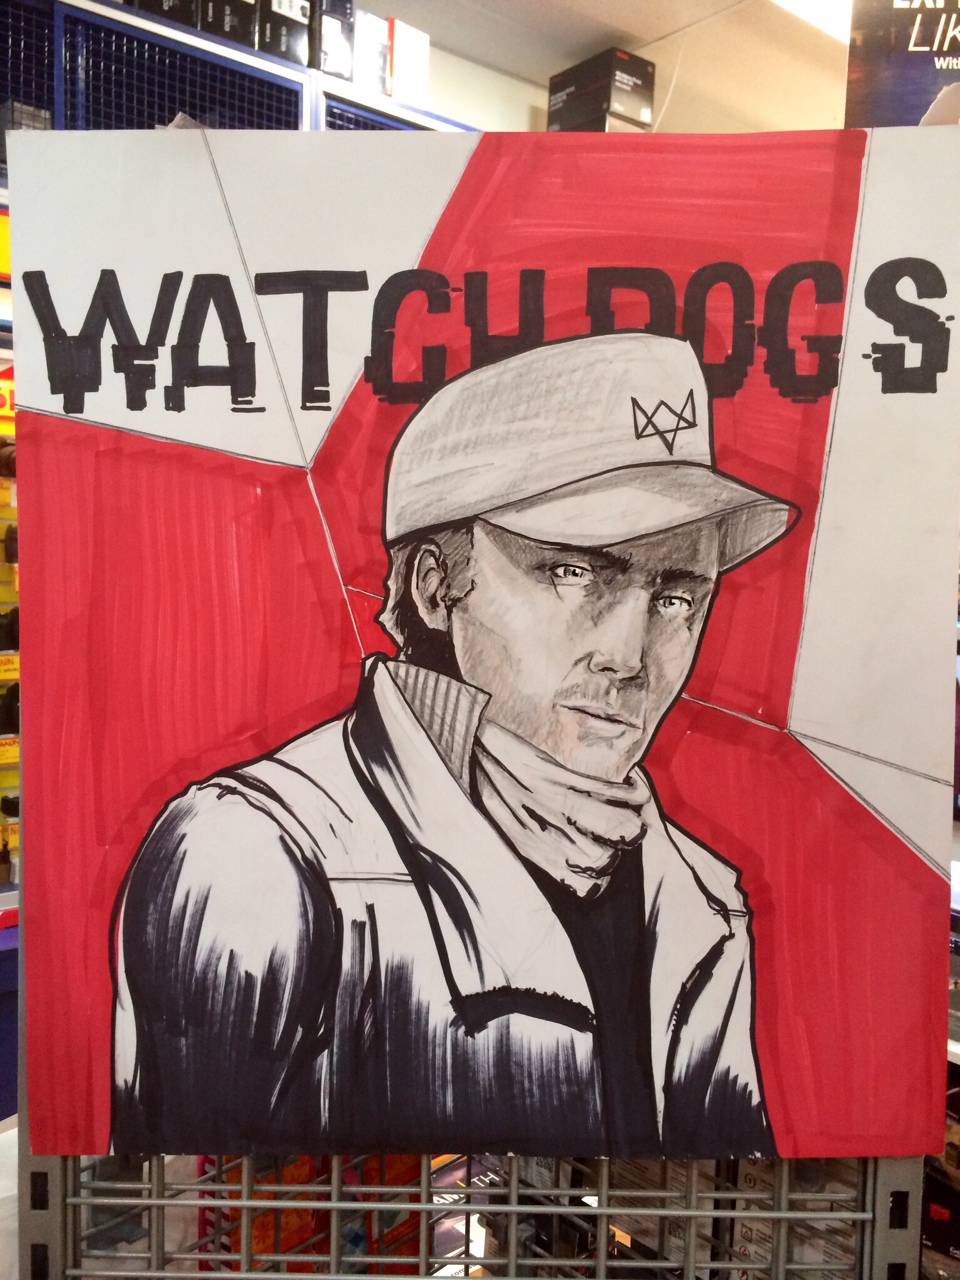 Watchdogs. Had no reference for the face because on all of the artwork he always has his mask on. Follow me for more artwork!